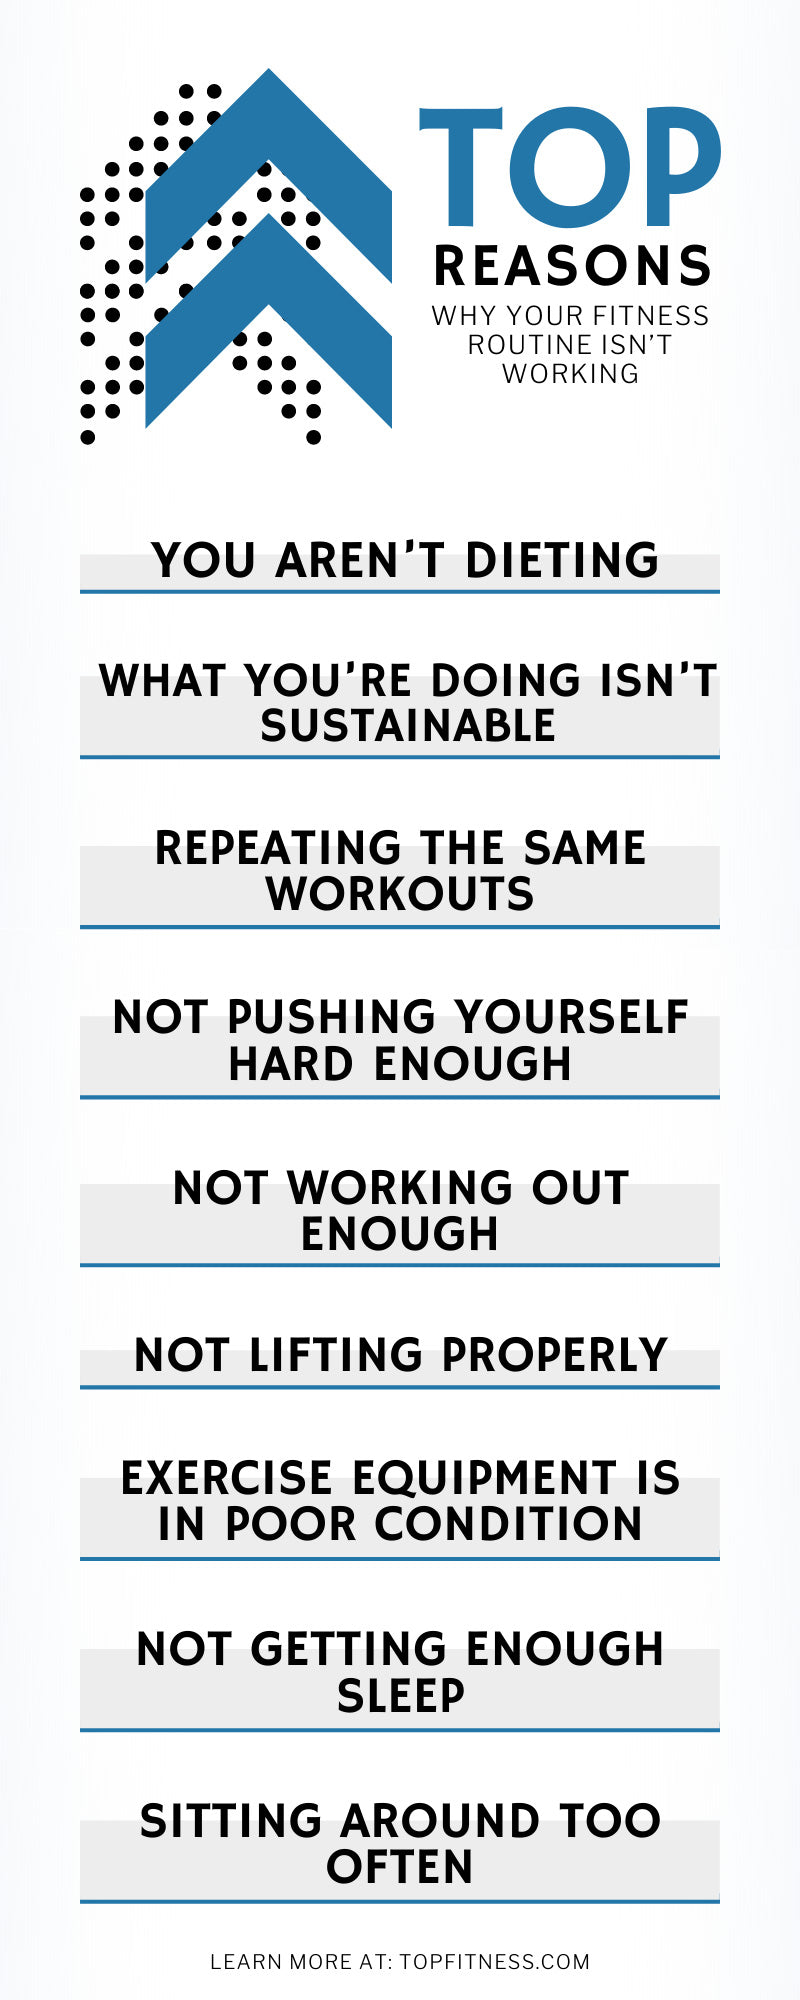 Top Reasons Why Your Fitness Routine Isn't Working